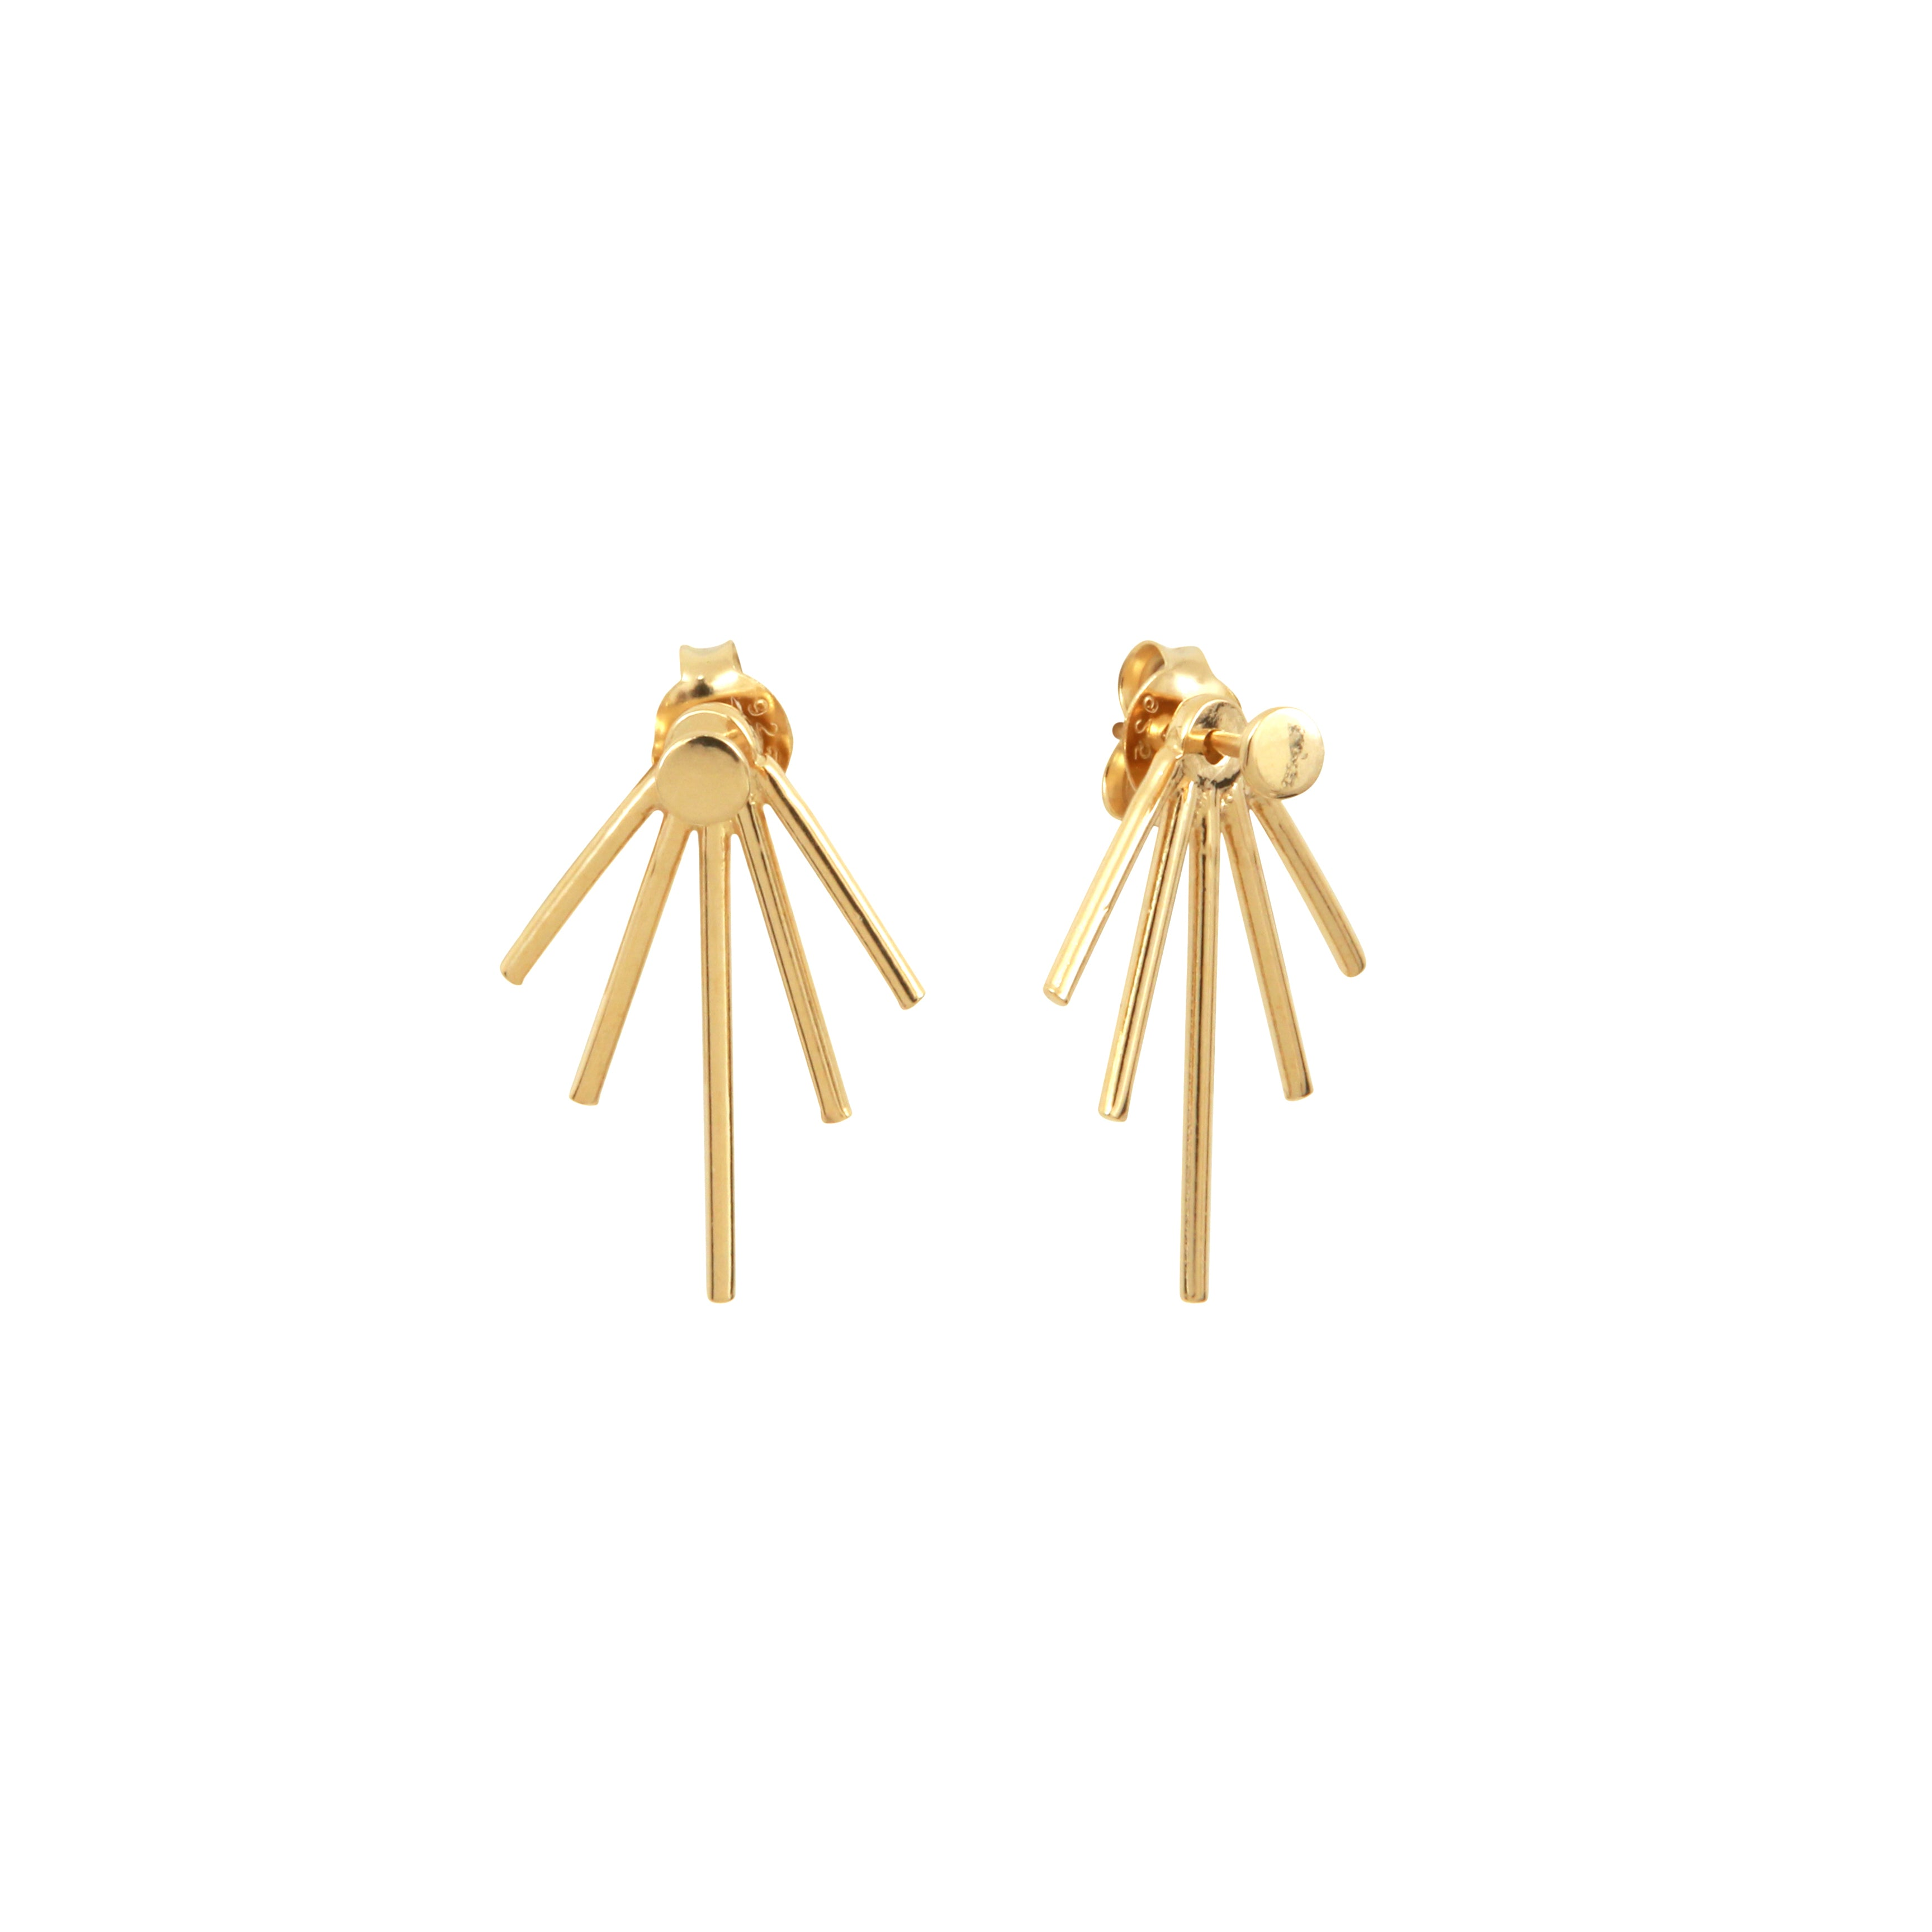 Lines Earrings Aurore Havenne Gold plated silver bijou simple jewellery minimalist